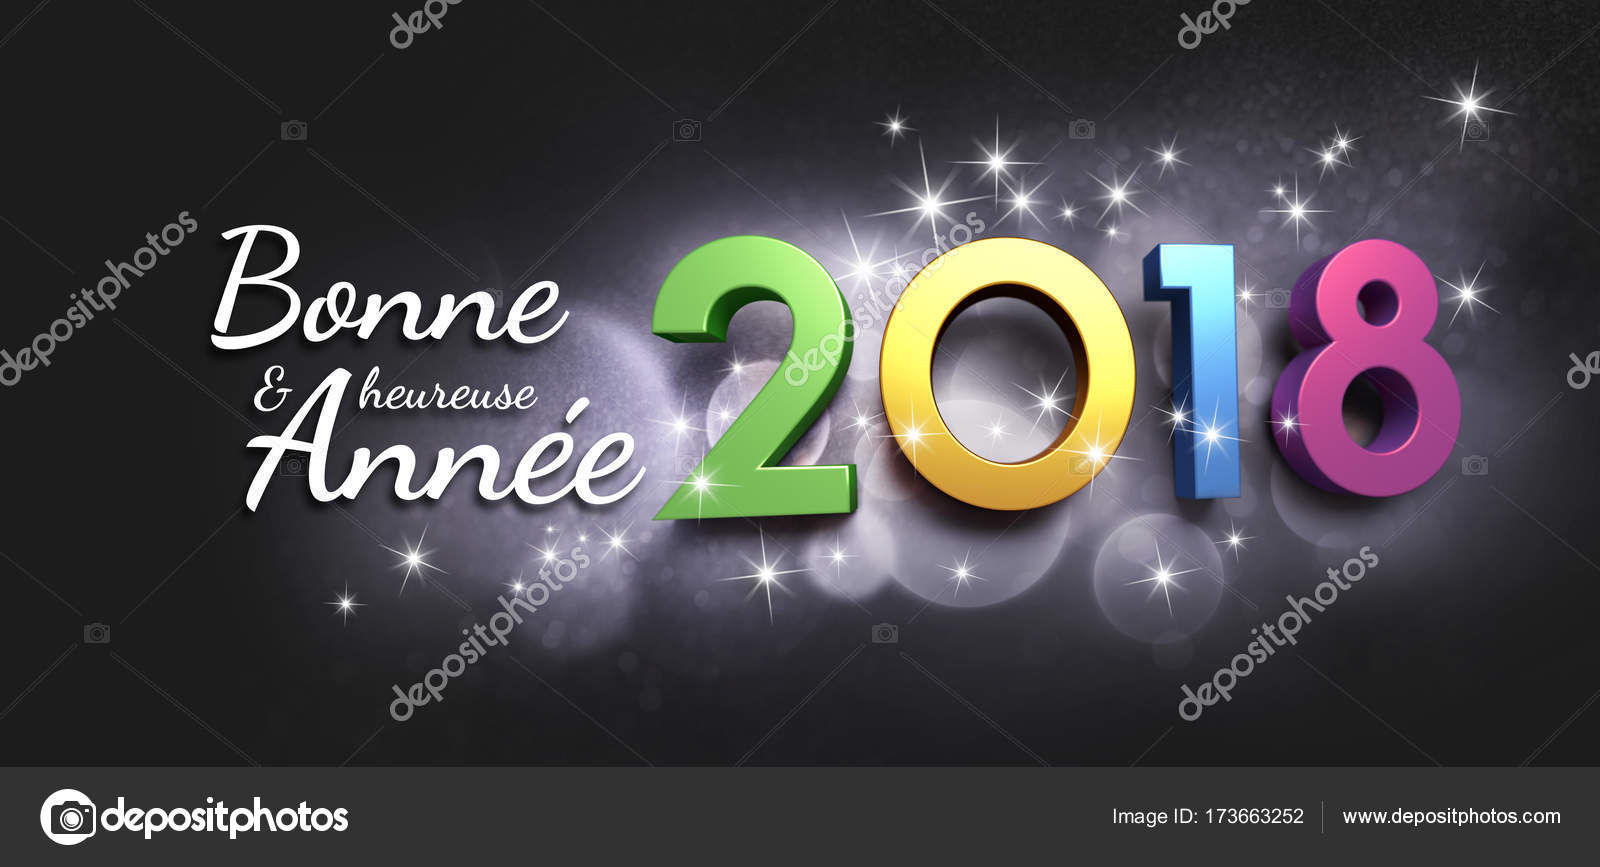 New Year 2018 Greeting Card In French Stock Photo Titoonz 173663252